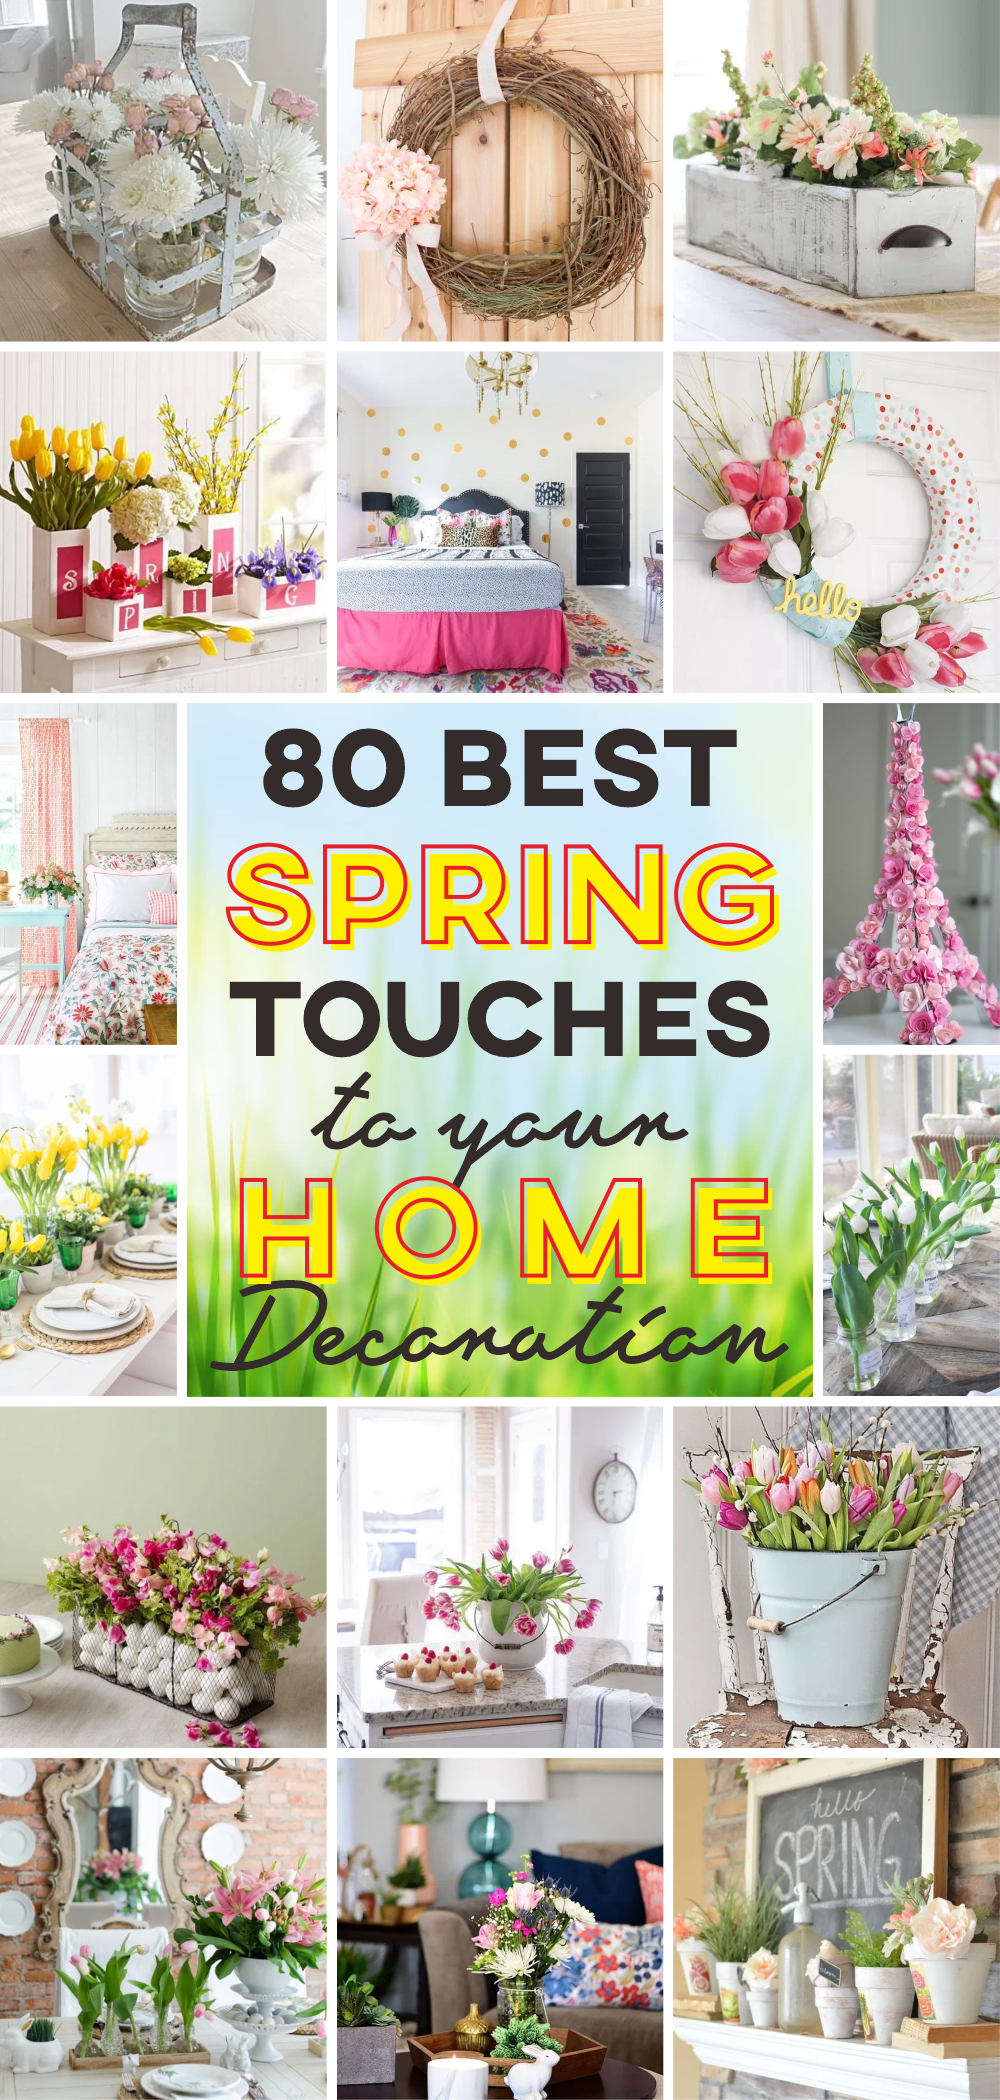 80 best spring touches to your home decoration 1